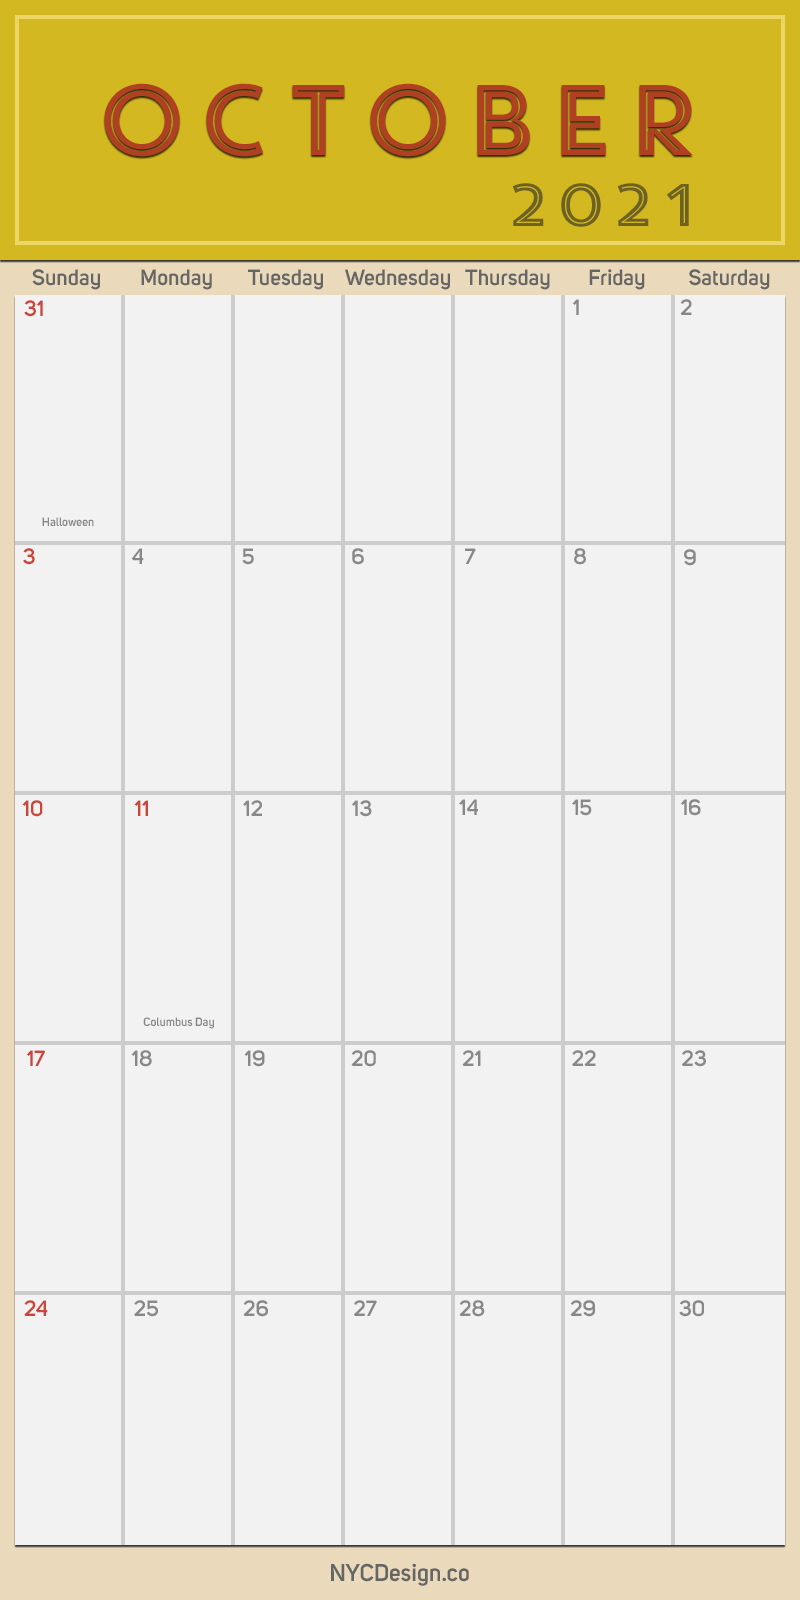 2021 October - Monthly Calendar With Holidays Printable